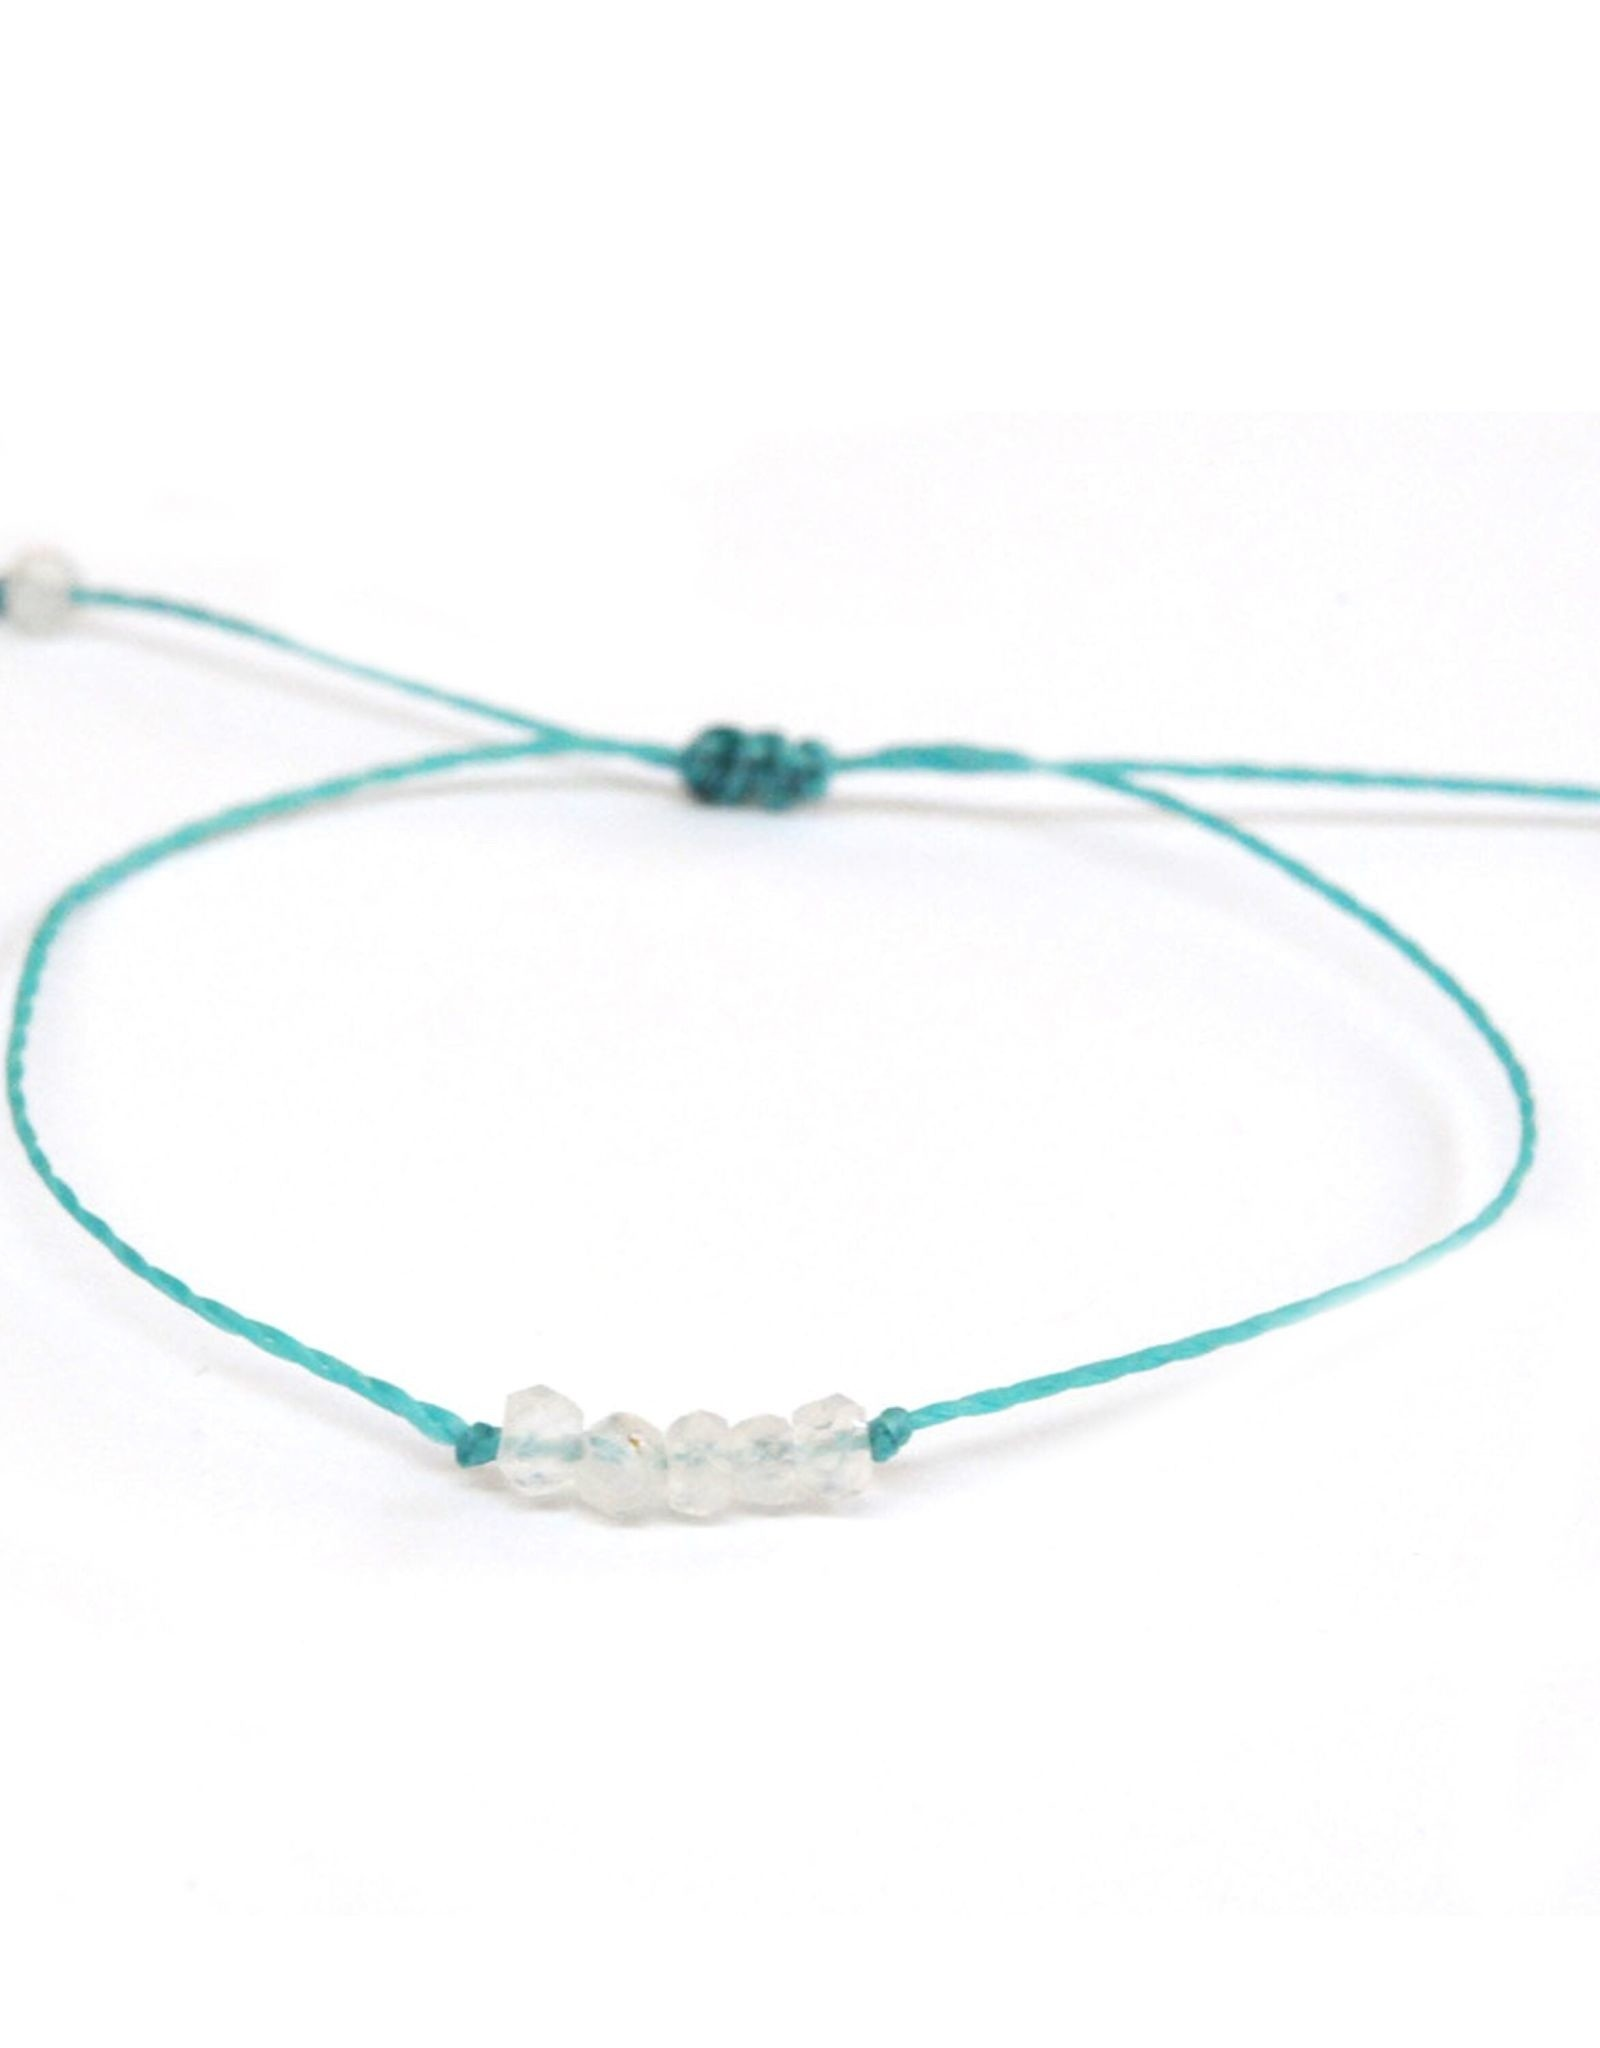 BRACELET MOONSTONE BEADS WITH WAXED THREAD